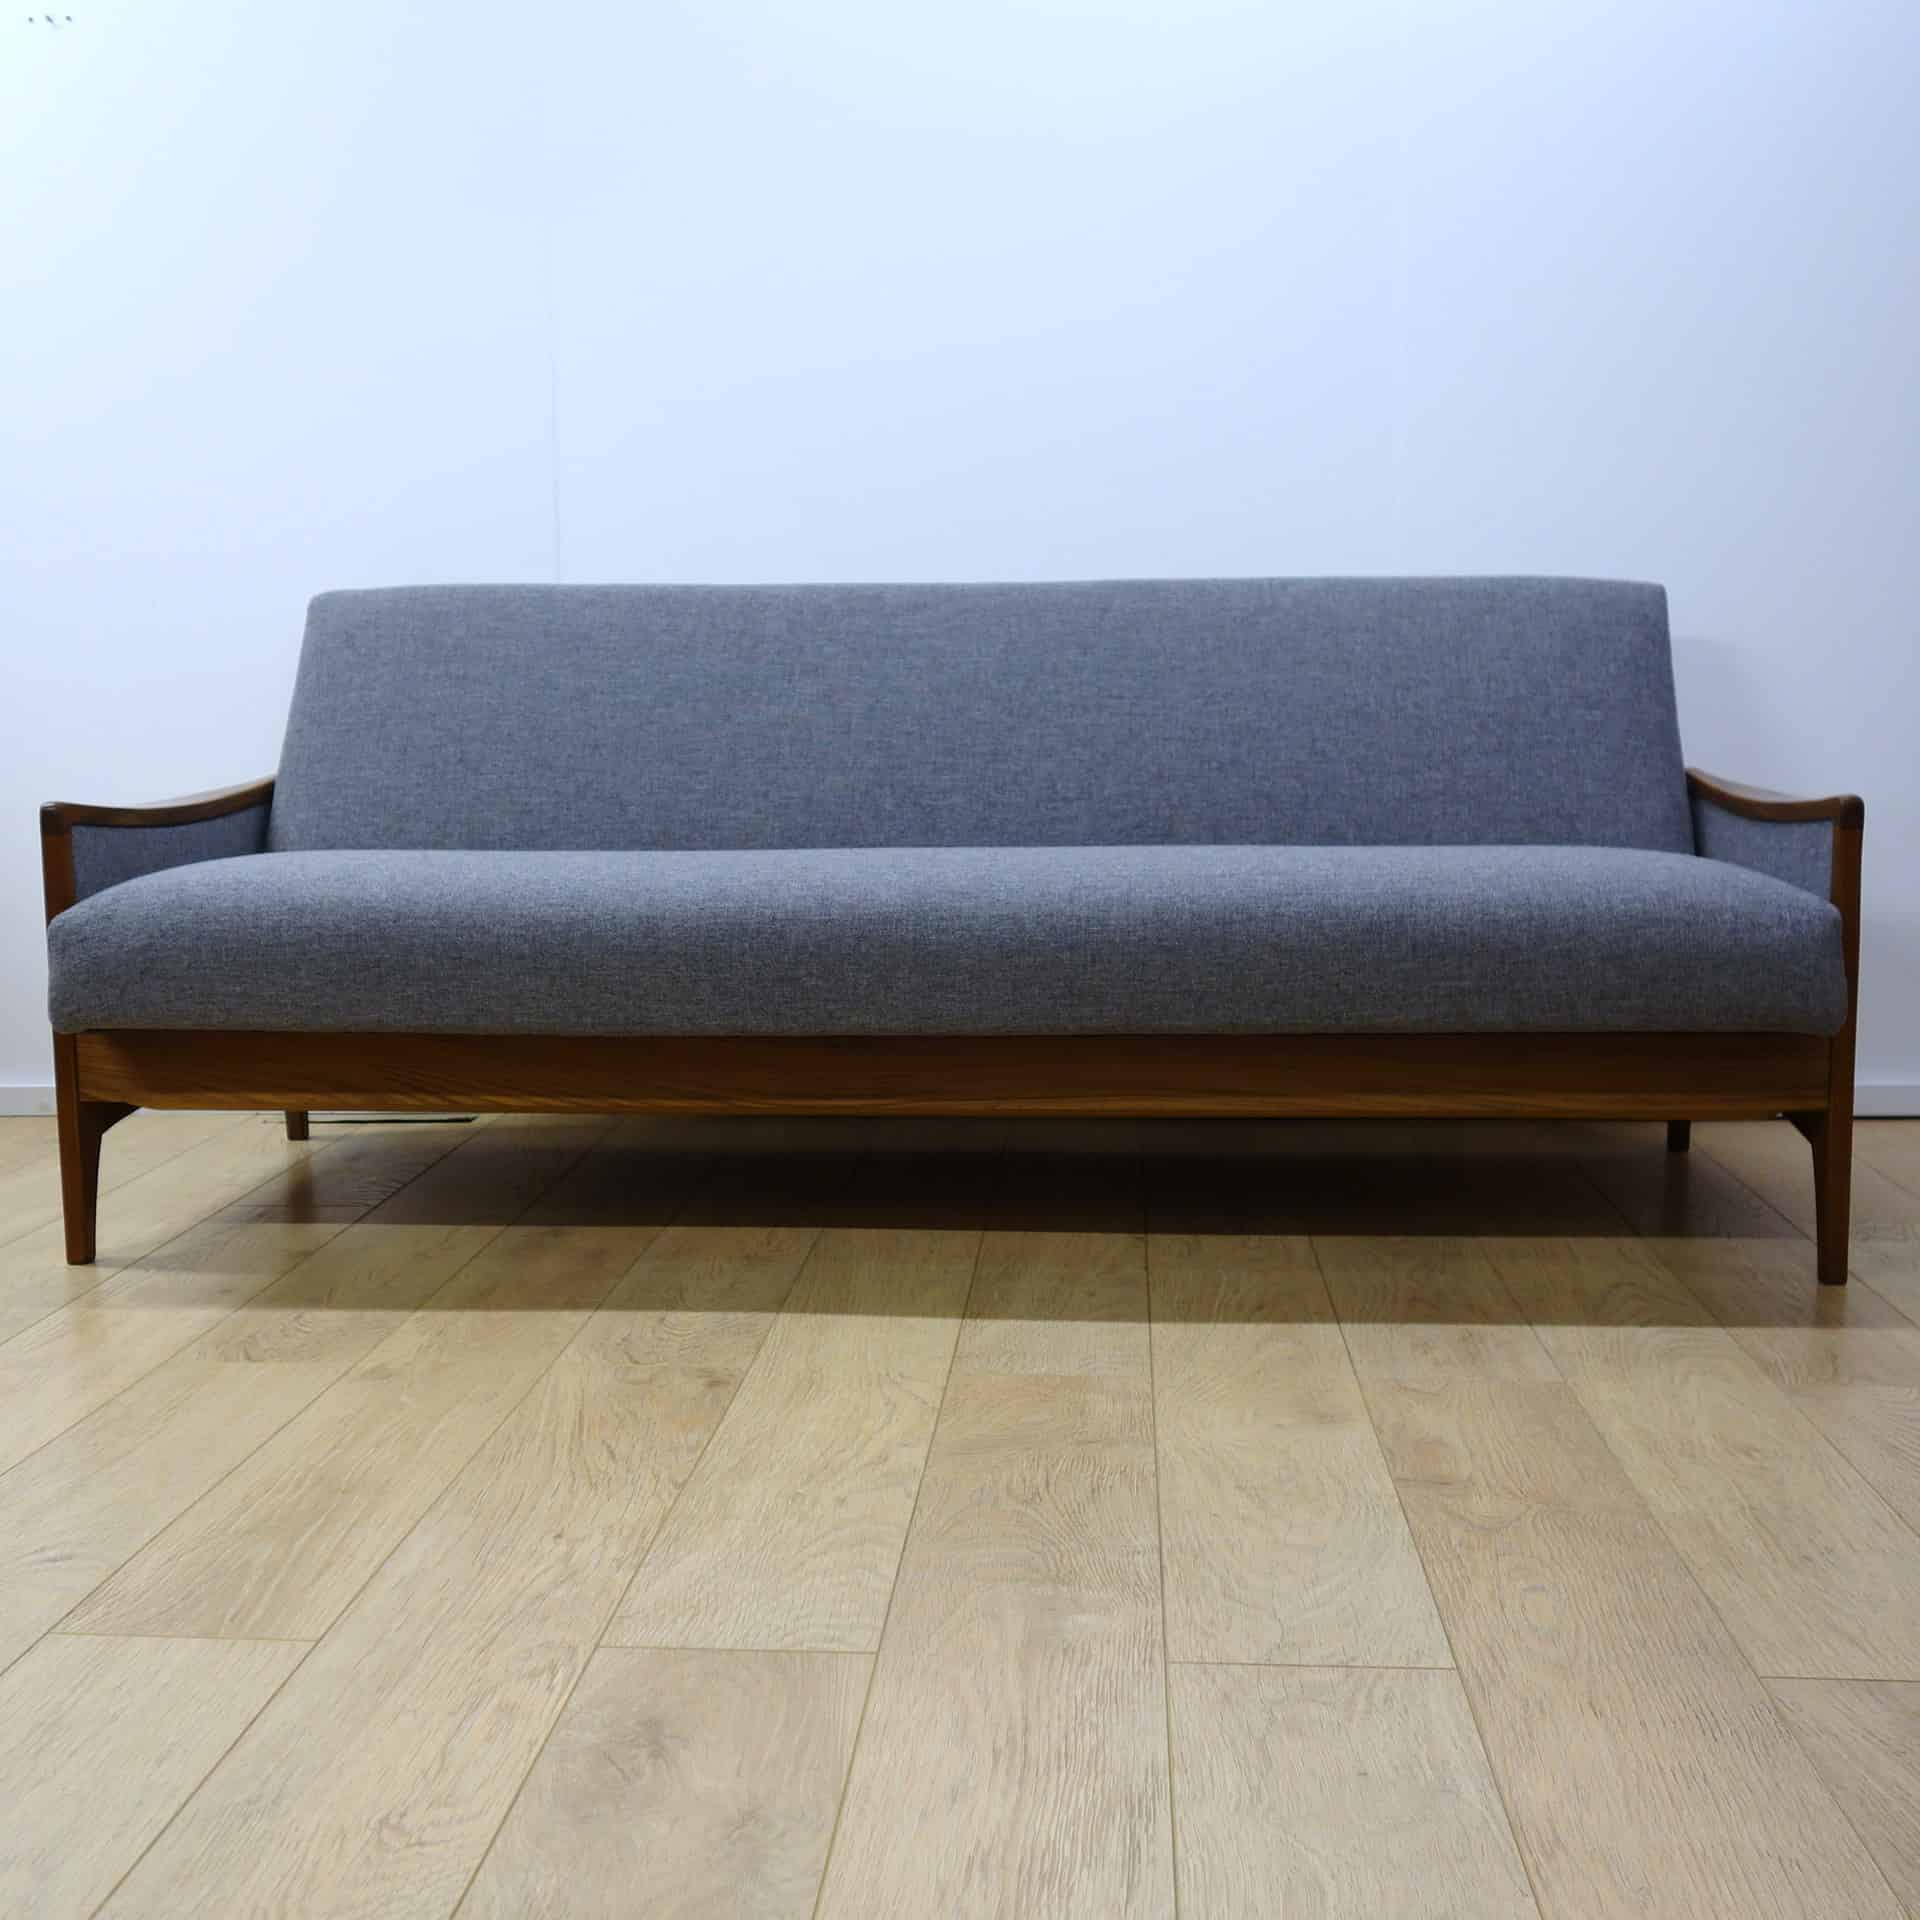 g plan sofa 66 kivik corner uk 1960s teak sofabed by mark parrish mid century modern